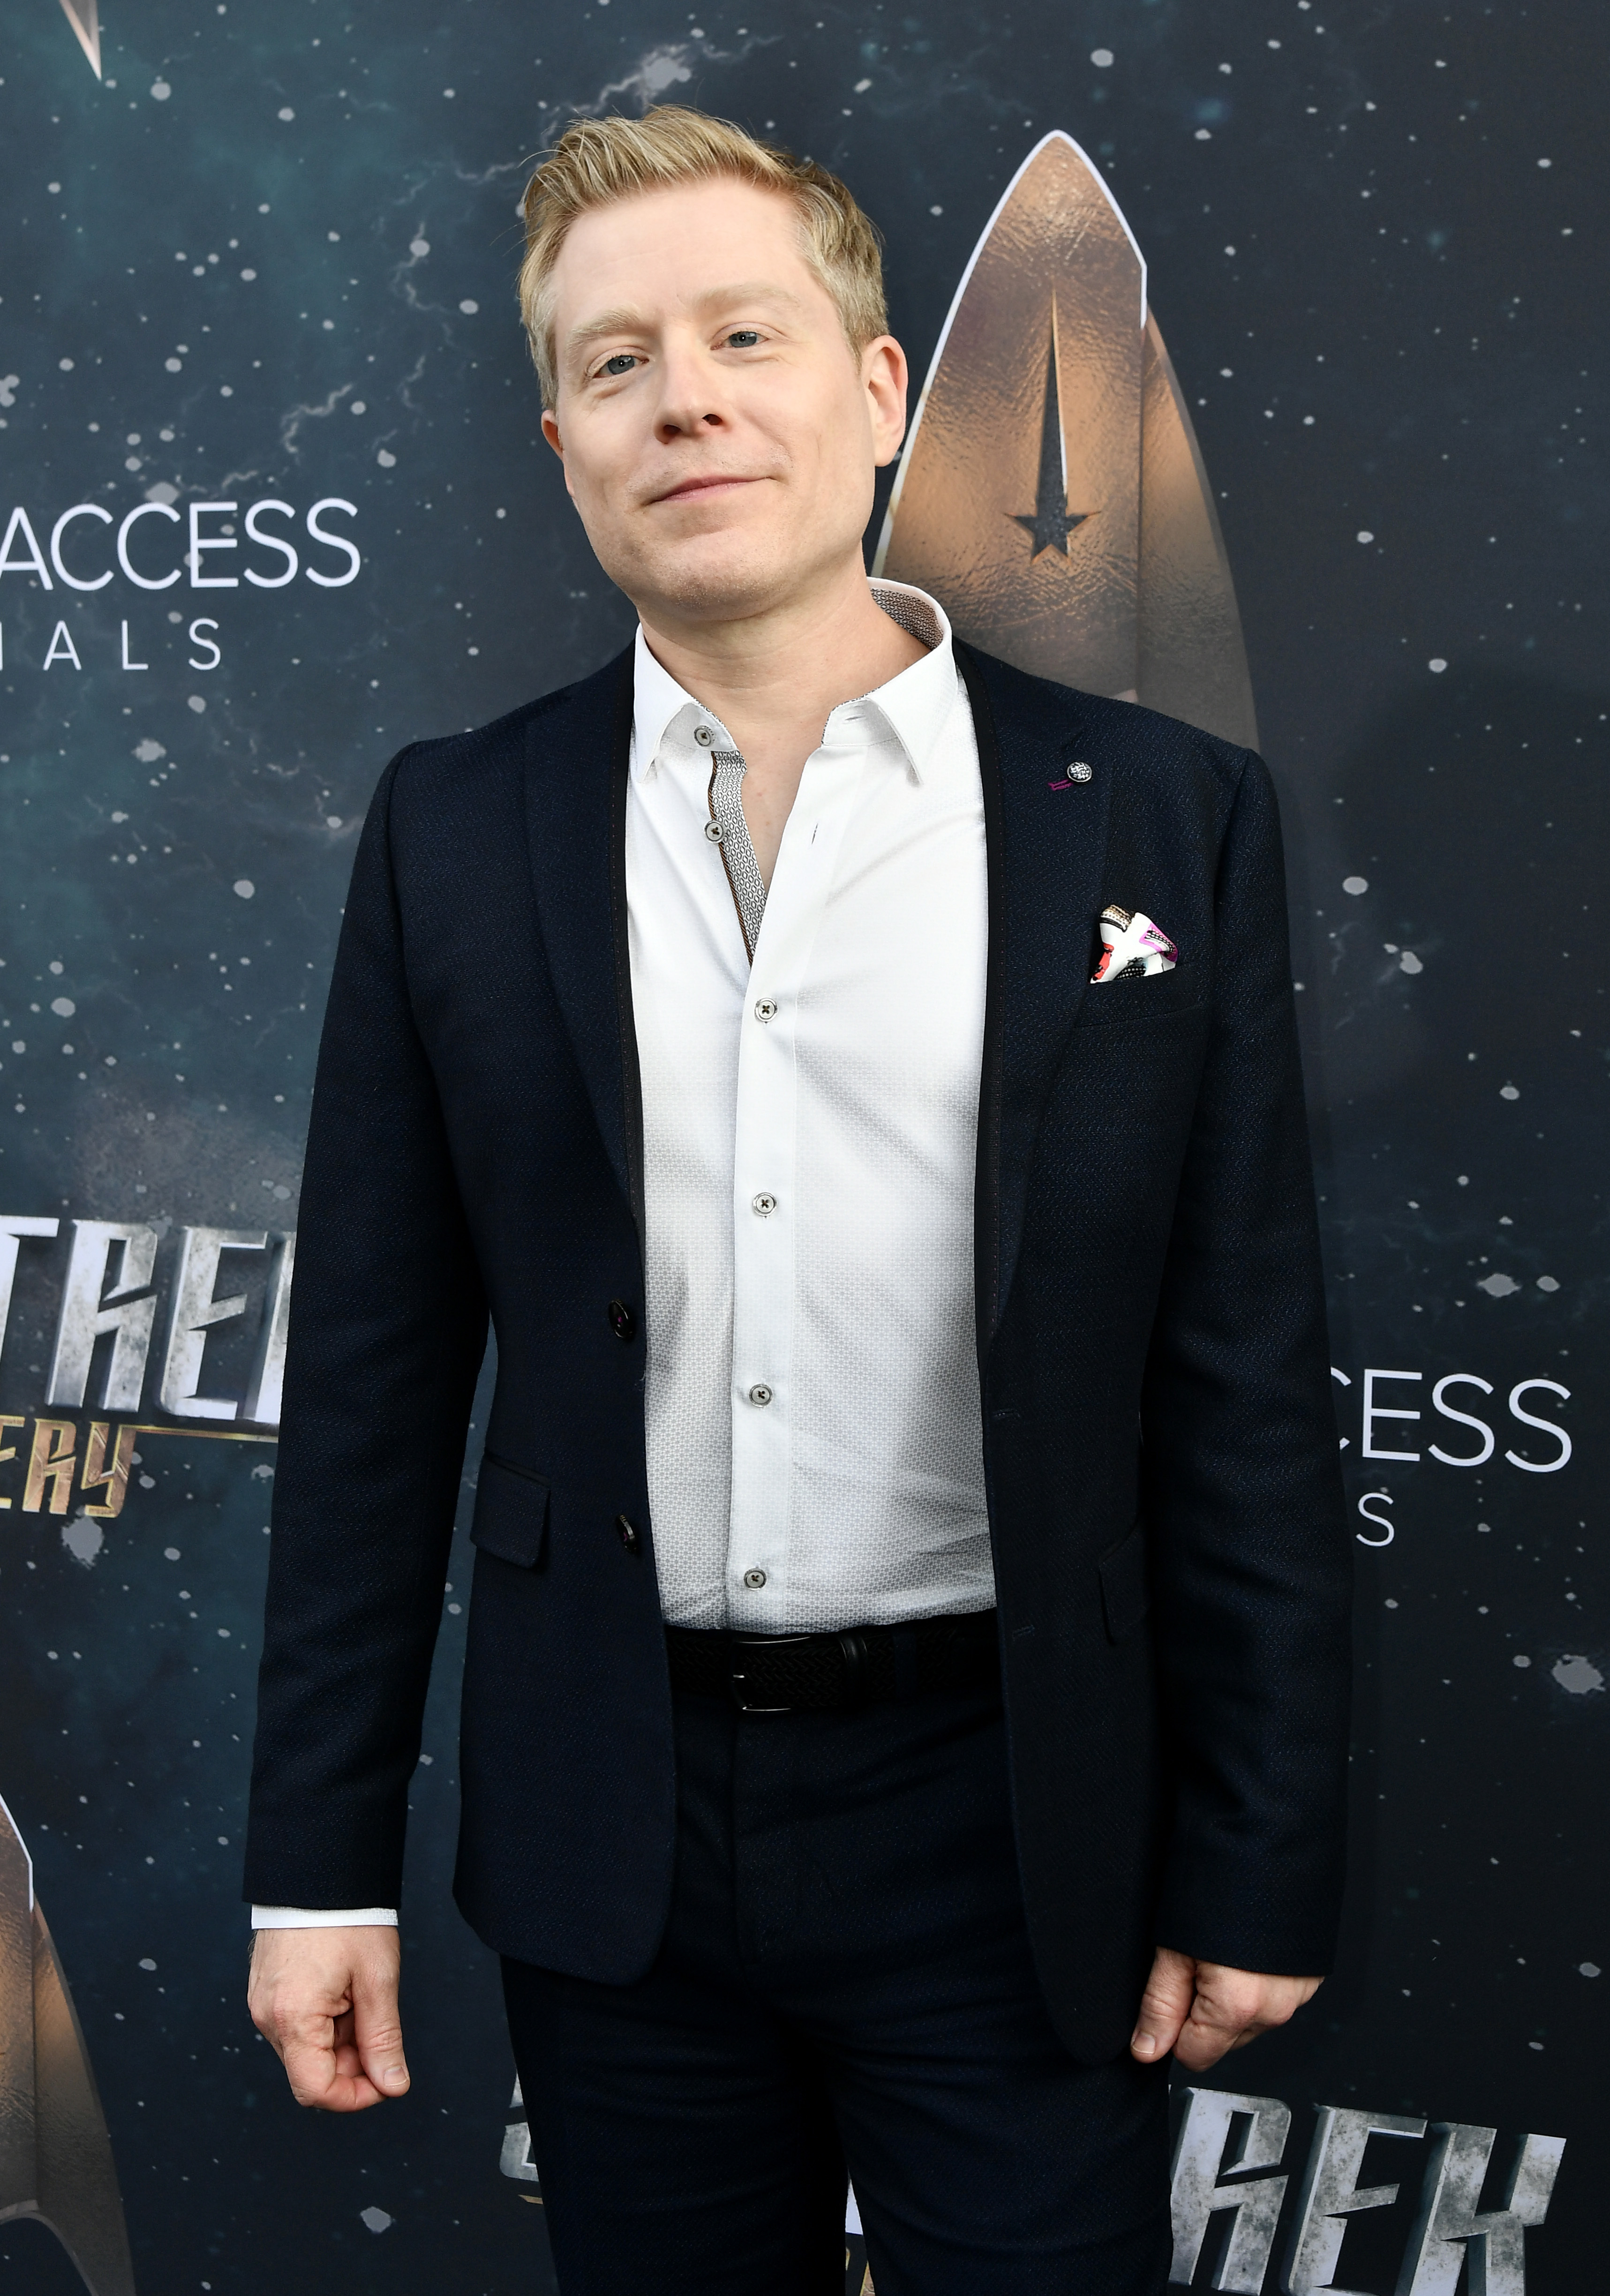 Anthony Rapp Star Trek Discovery Actors And Actresses